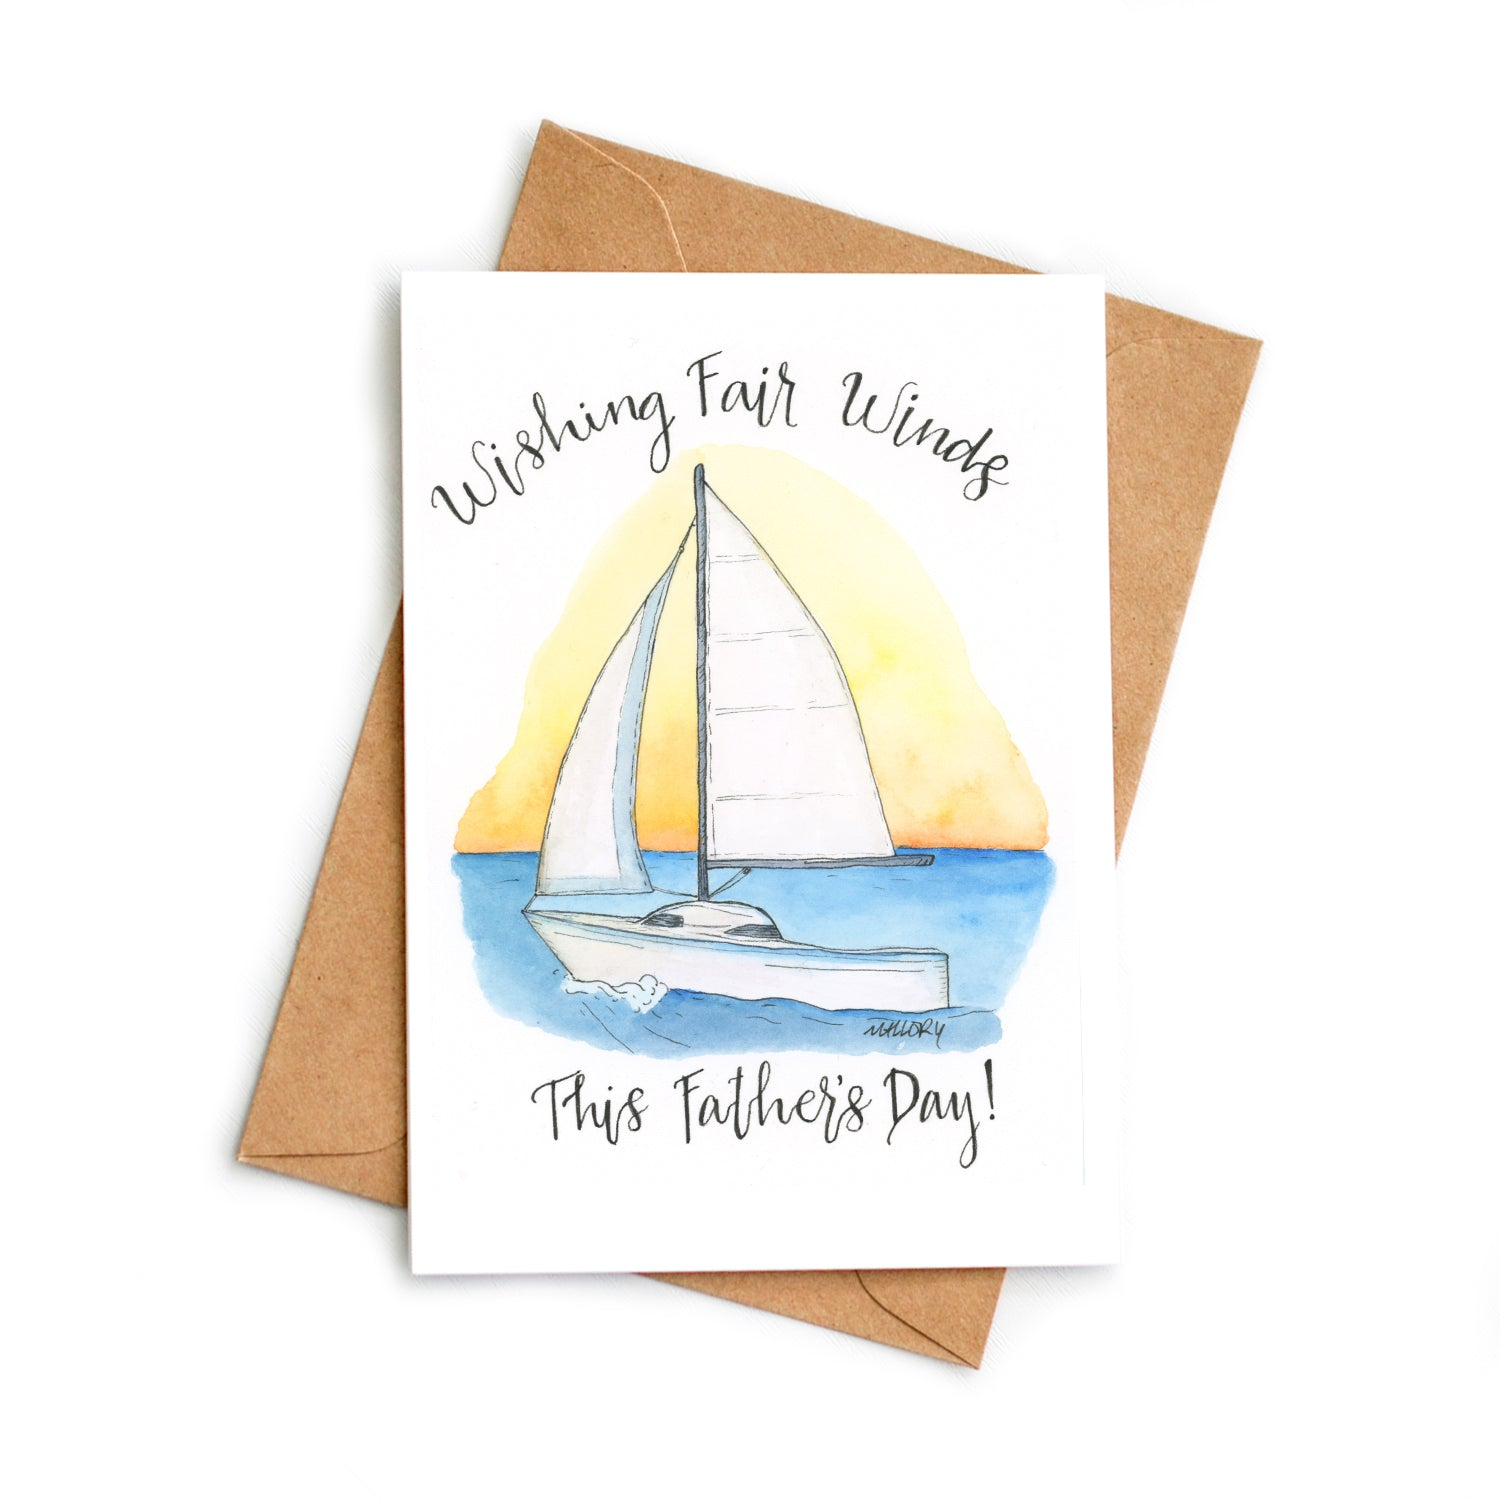 Sailboat Father's Day card, card for Father's Day, card for dad, handmade card for dad